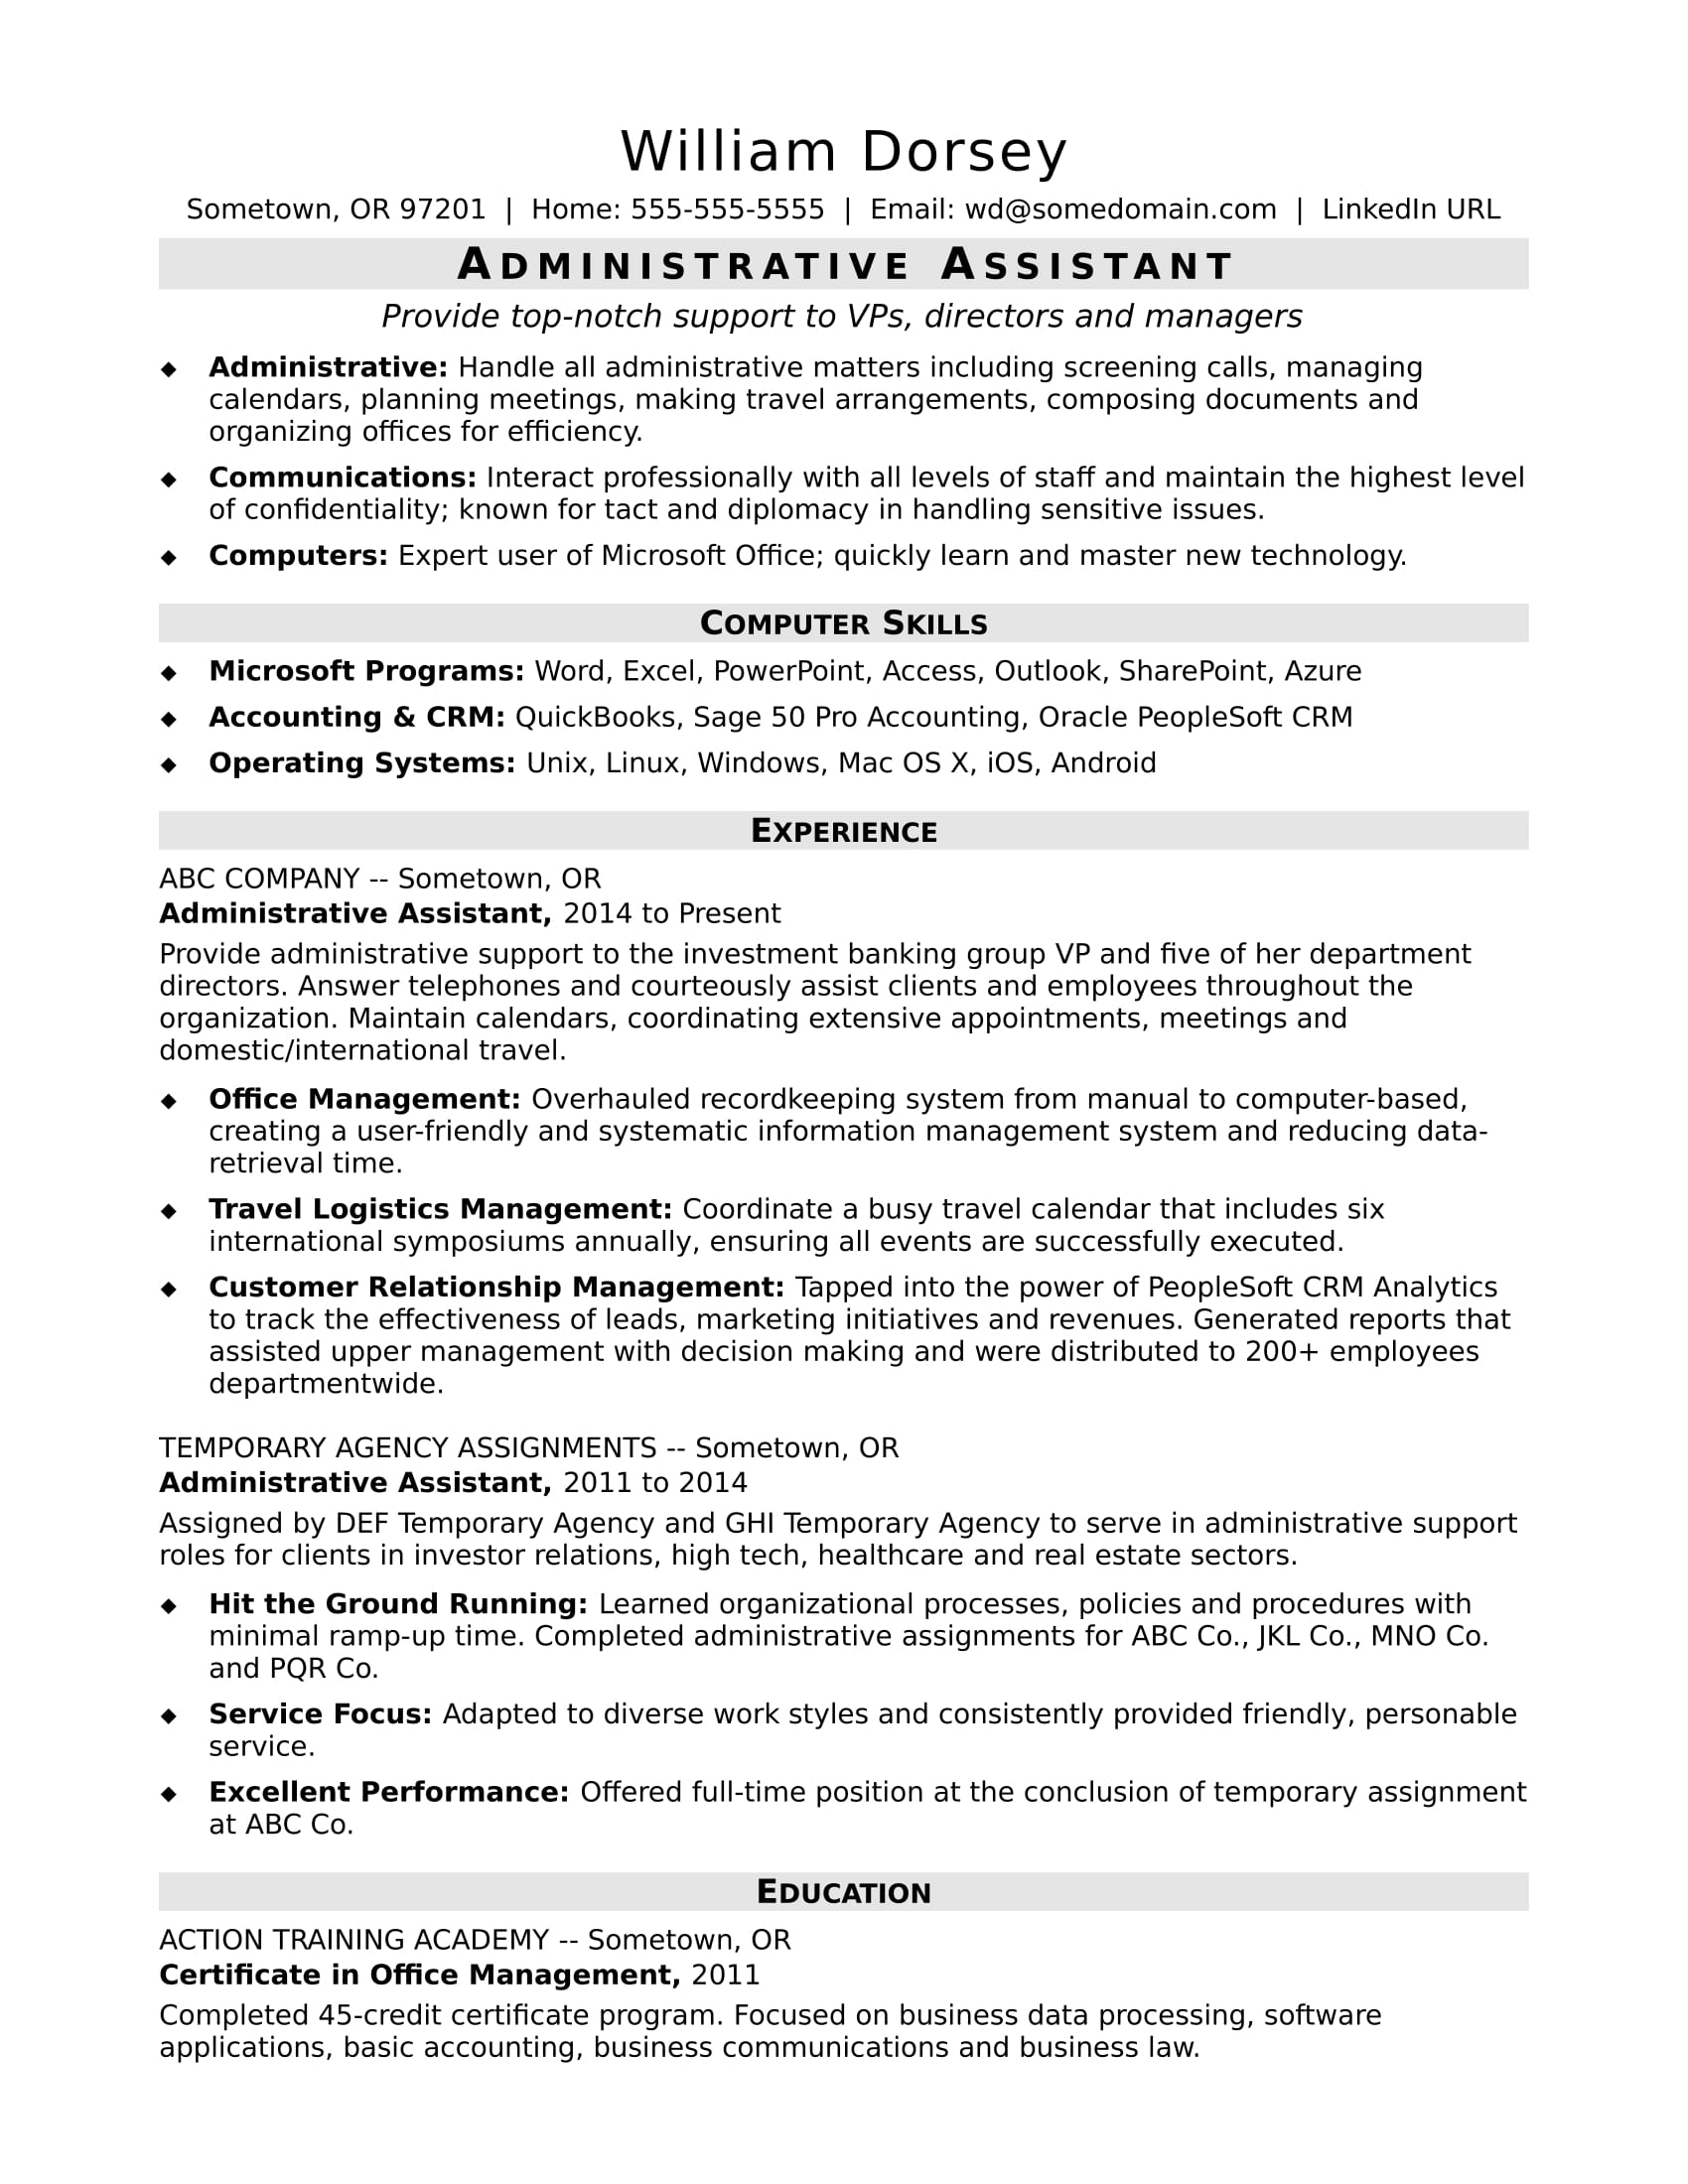 sample resume for a midlevel administrative assistant - Sample Administrative Assistant Resume